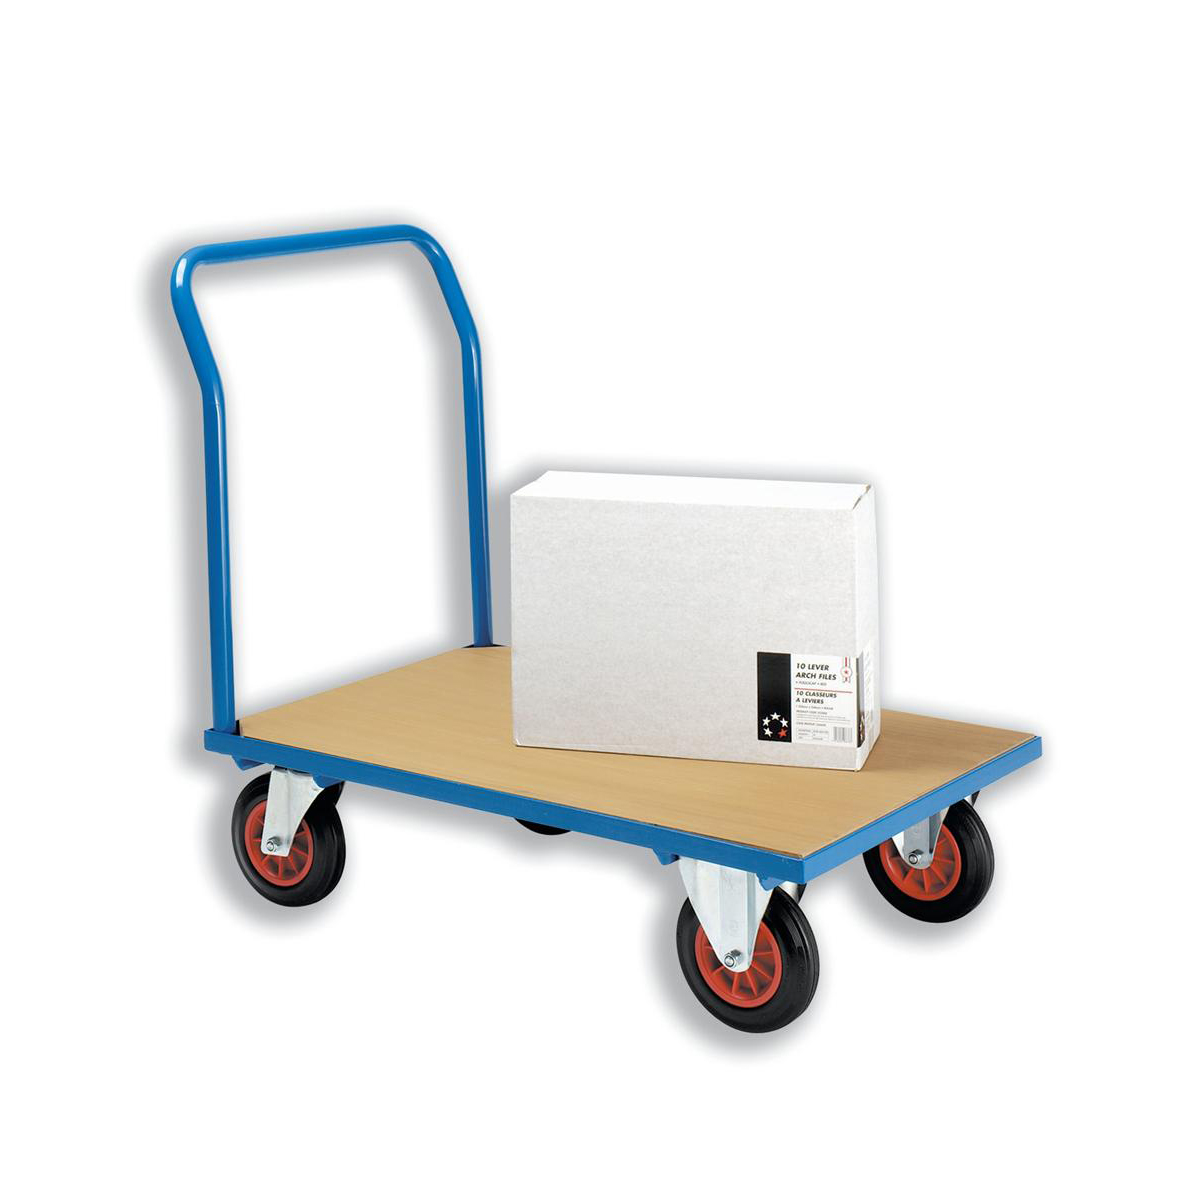 Tilt trucks 5 Star Facilities Platform Truck Heavy-duty Capacity 500kg Baseboard W1000xD700mm Blue